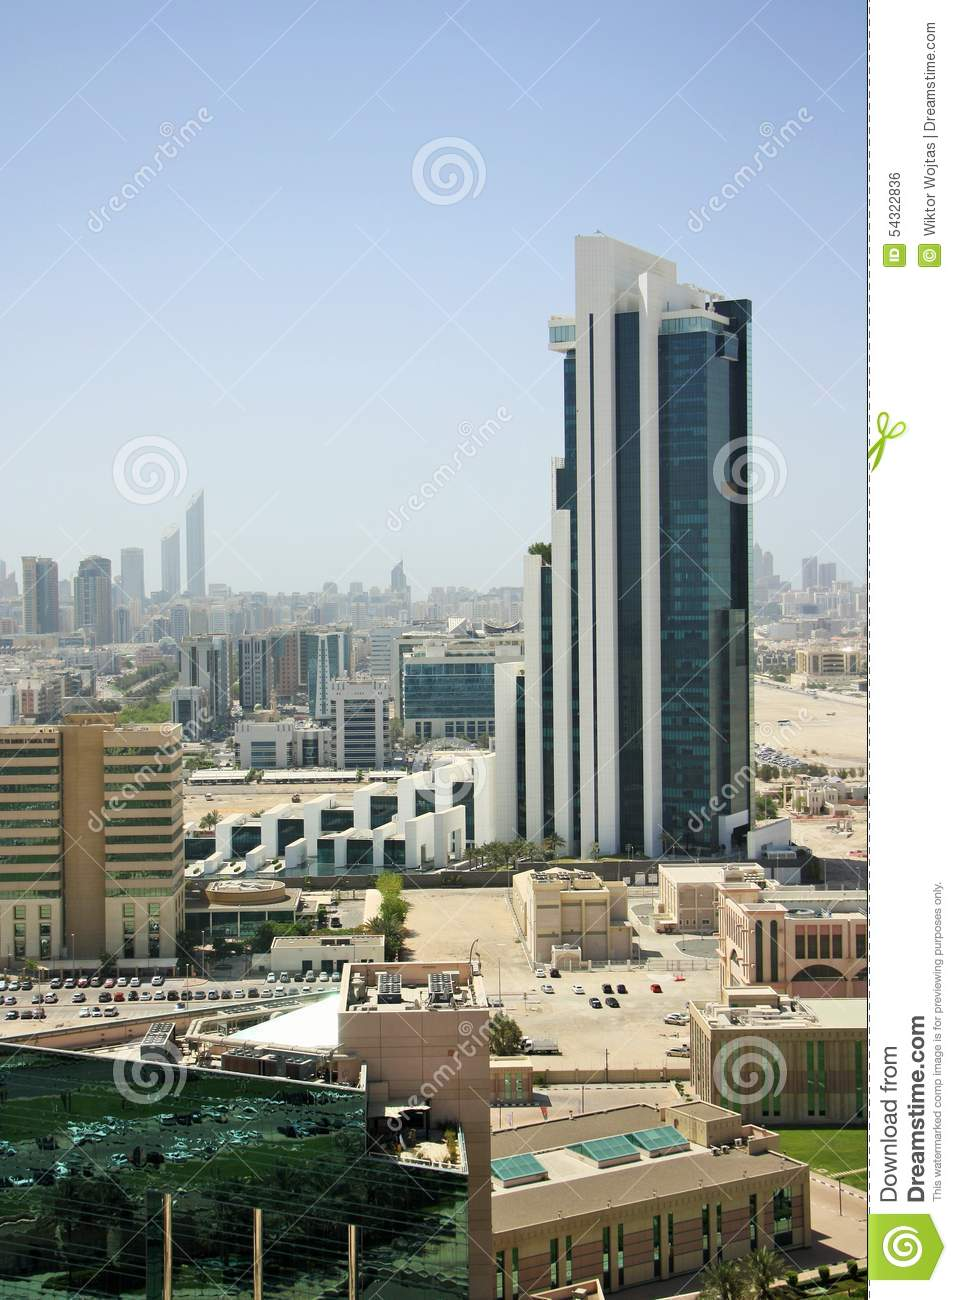 International petroleum investment company hq in abu dhabi for International decor company abu dhabi